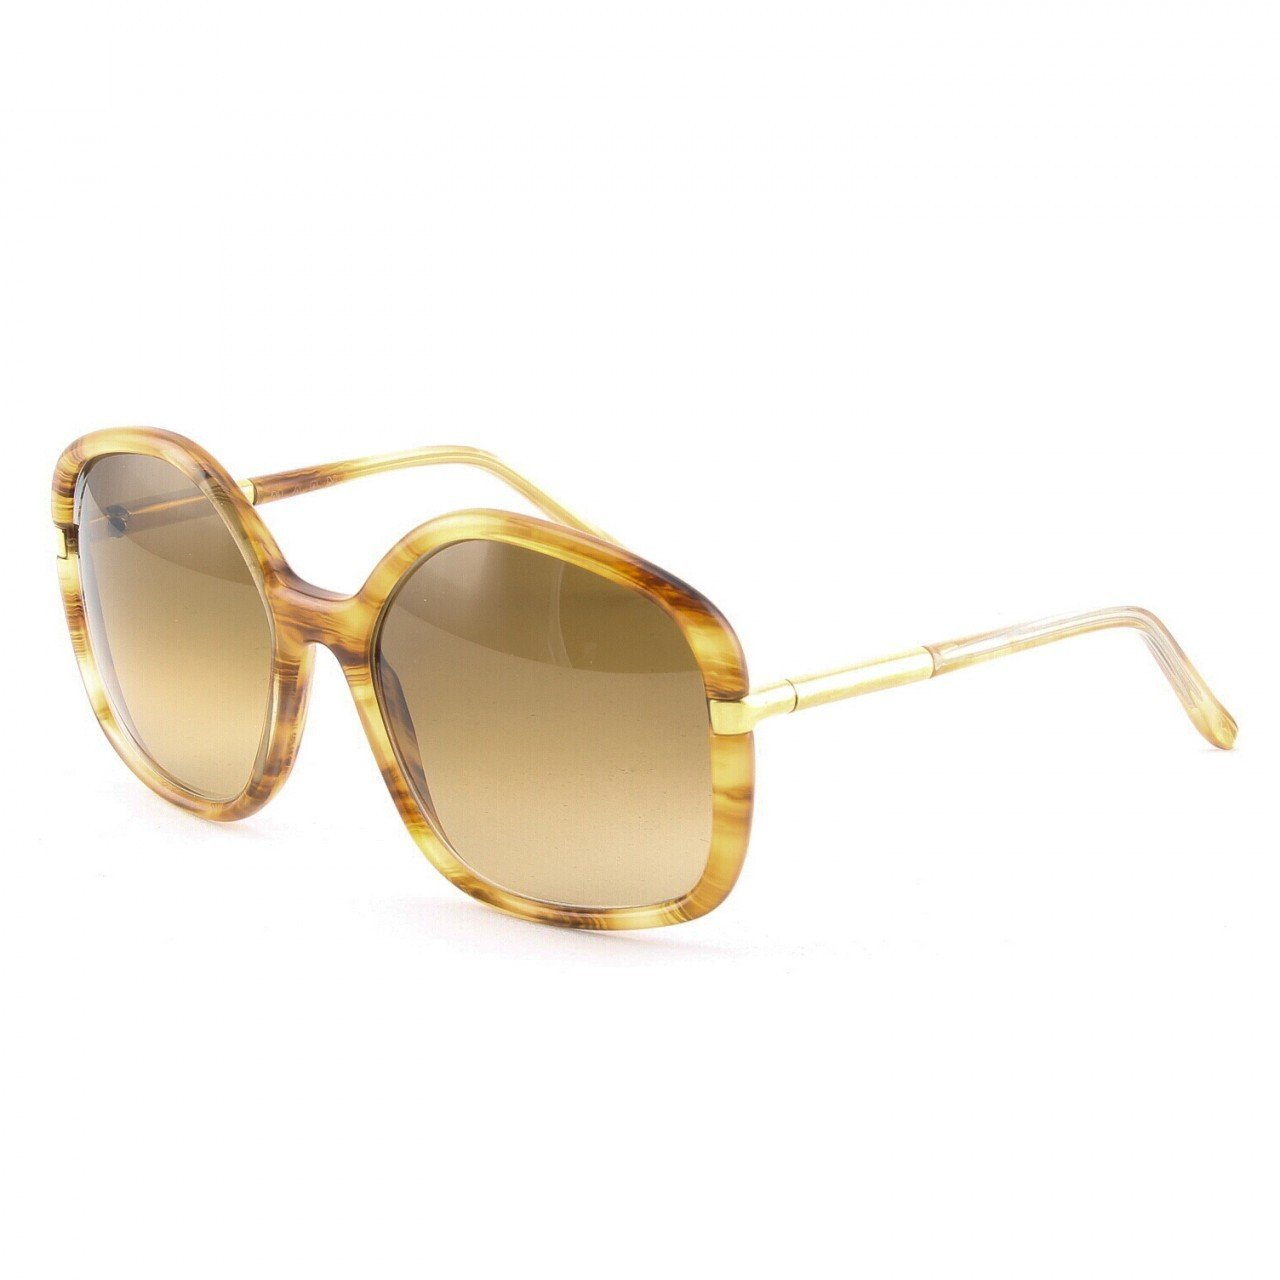 Marni MA211 Sunglasses Col. 01 Translucent Tortoise Gold Accent with Brown Gradient Lenses